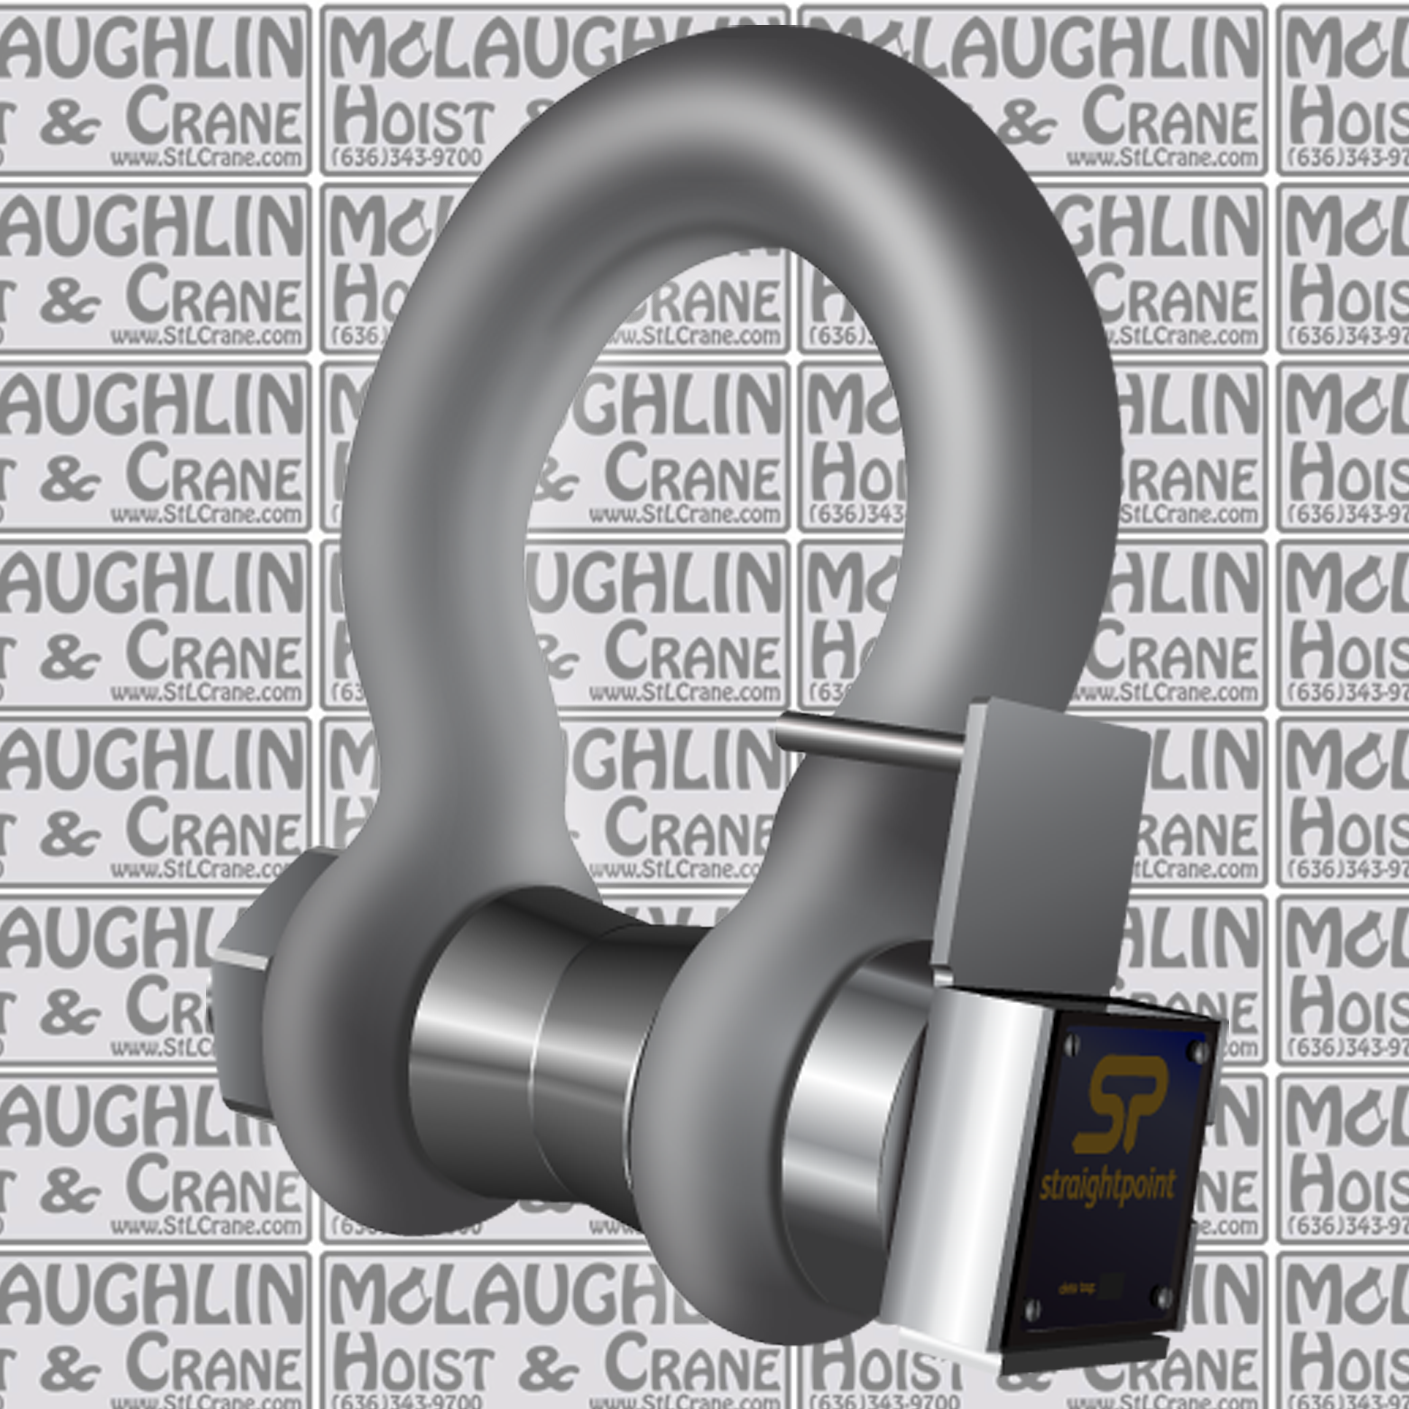 StraightPoint Shackle Loadcell